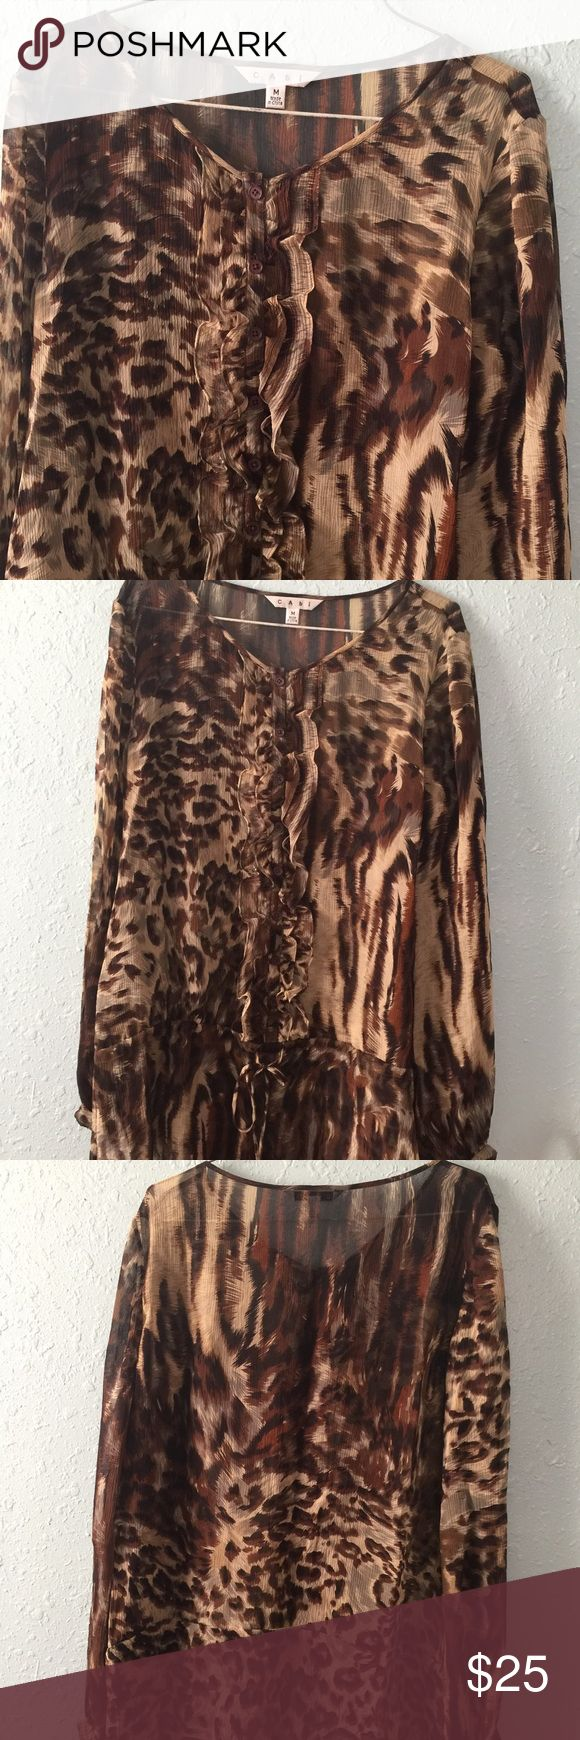 Semi-sheet leopard print blouse/top Lightweight print, ruffle front with buttons. Browns, black, and cream colored leopard pattern. Excellent condition, gently used CAbi Tops Blouses